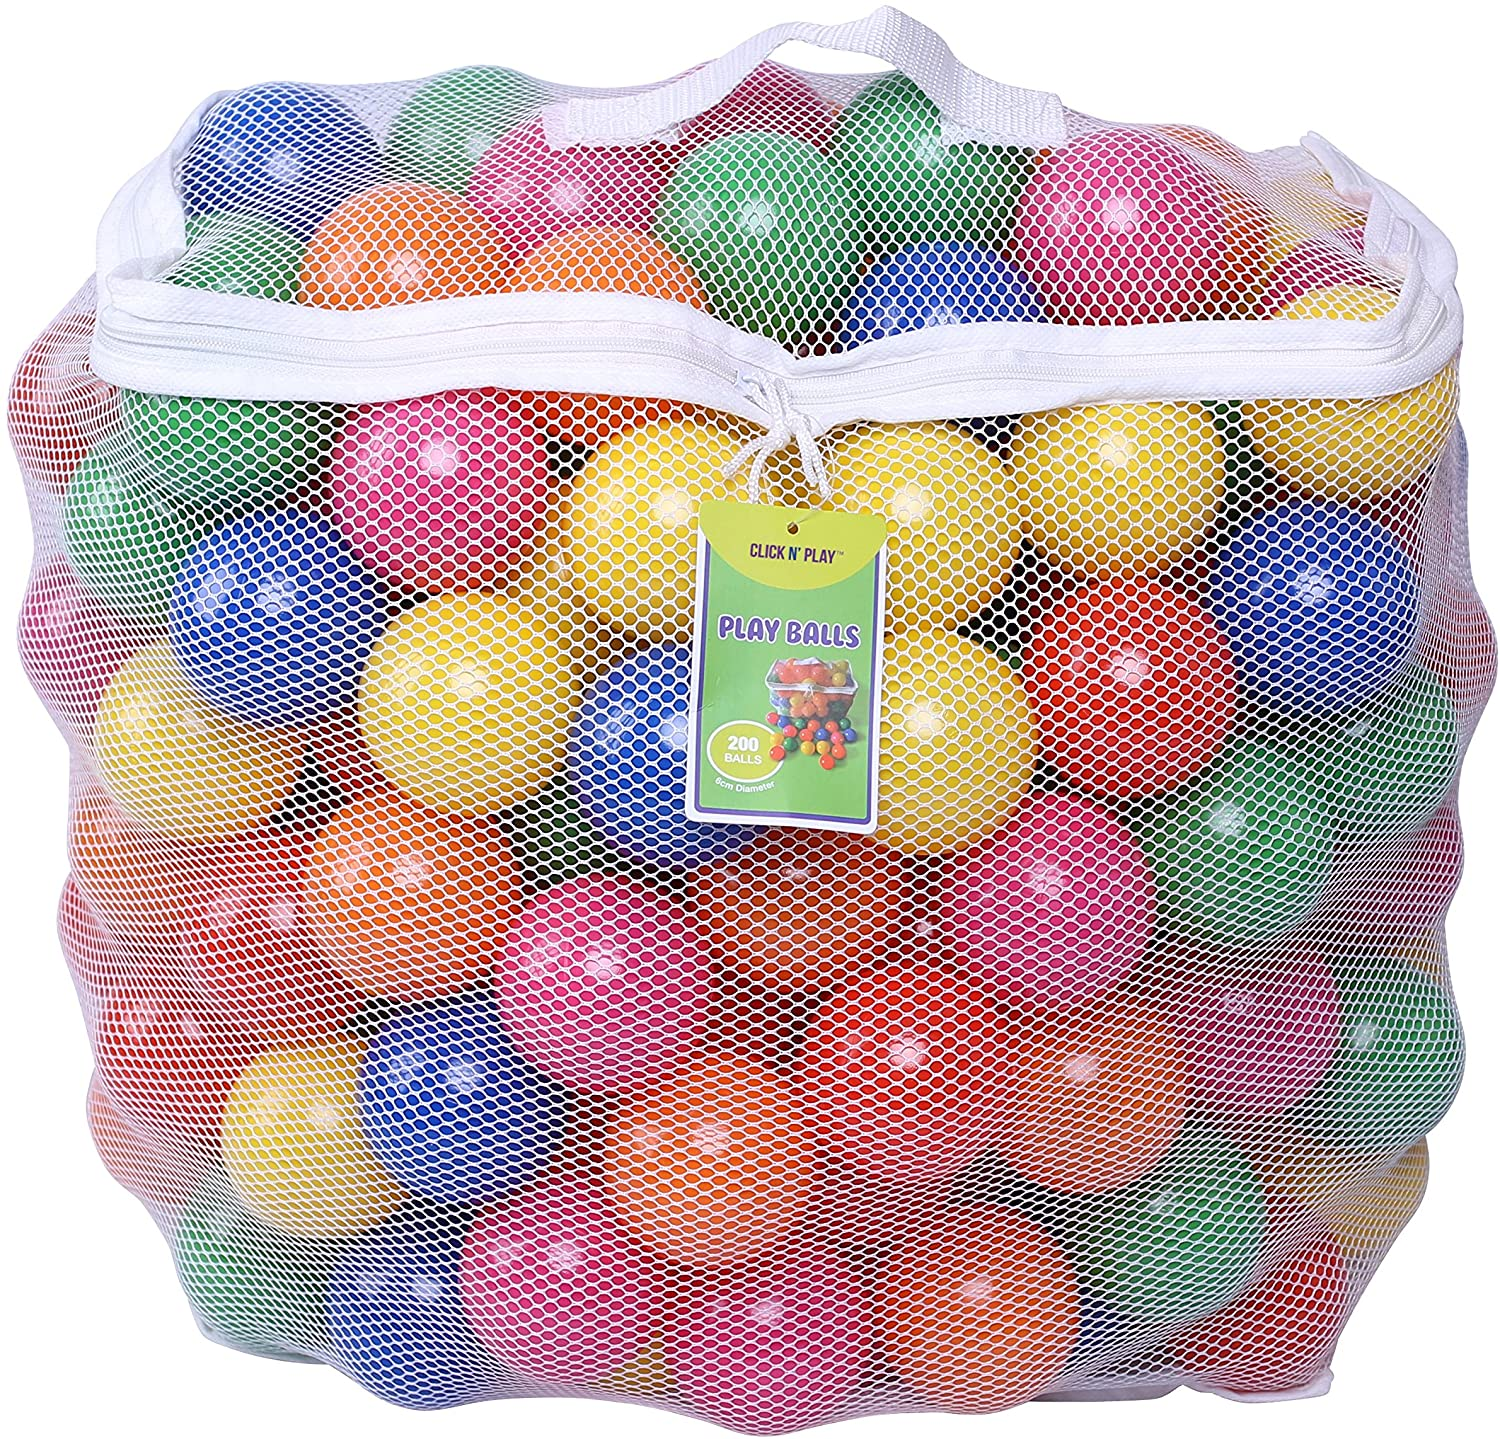 Top 9 Best Ball Toy For Toddlers (2020 Reviews & Guide) 7